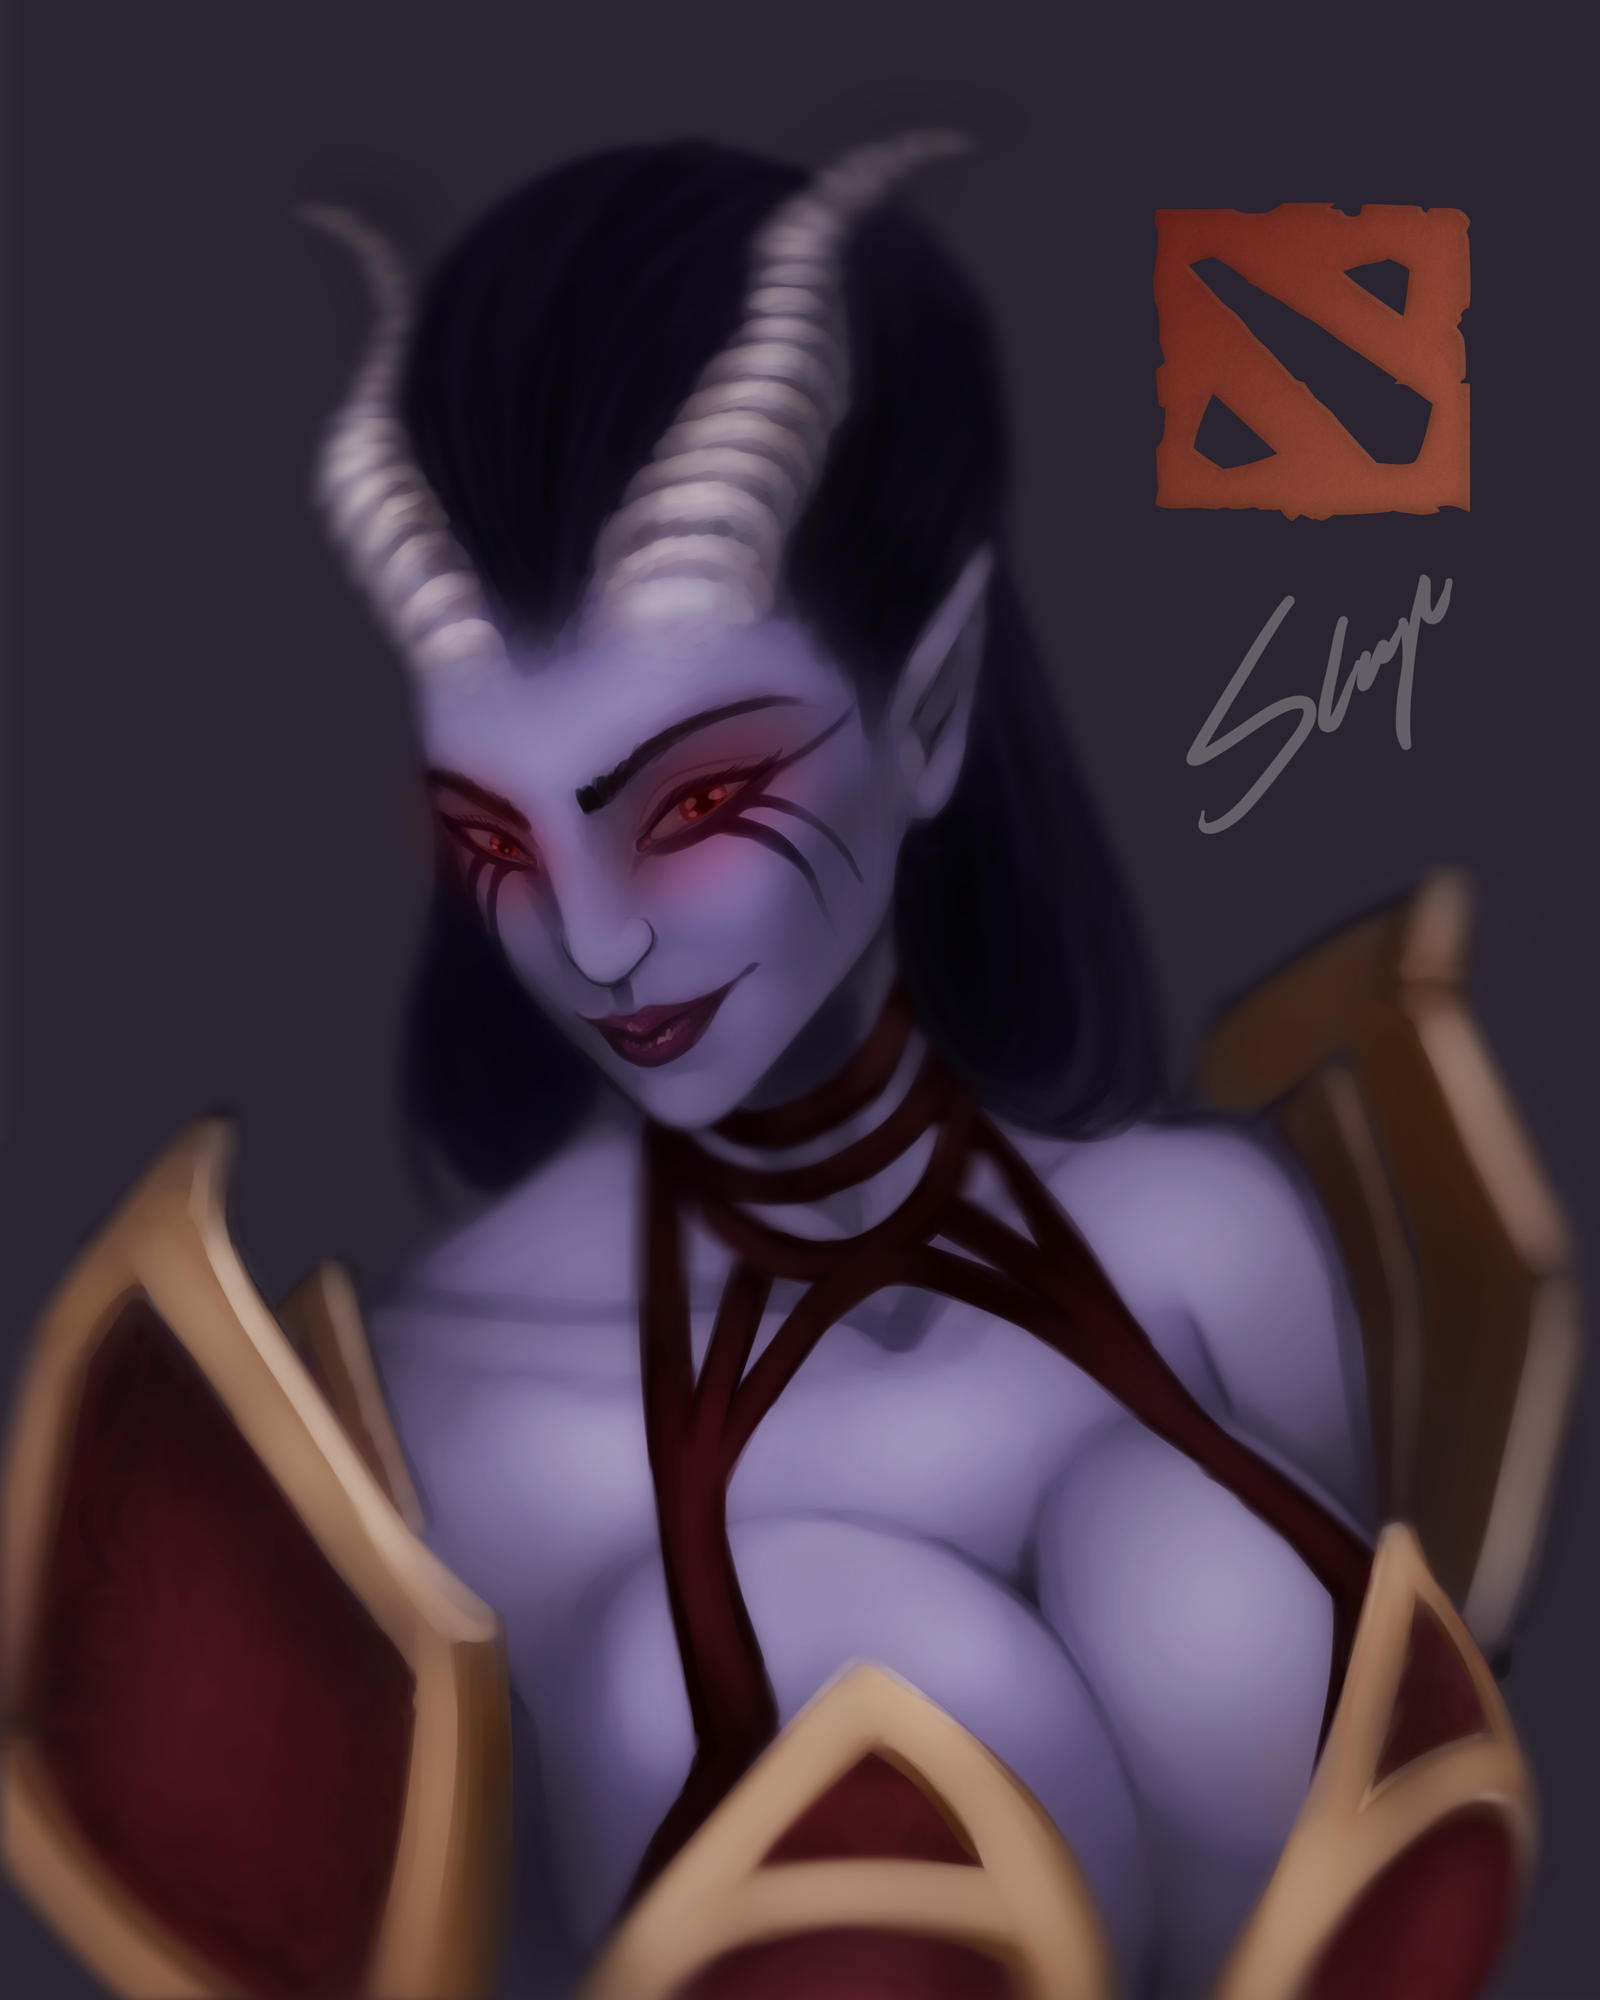 dota 2 queen of pain by augustogarcia on deviantart